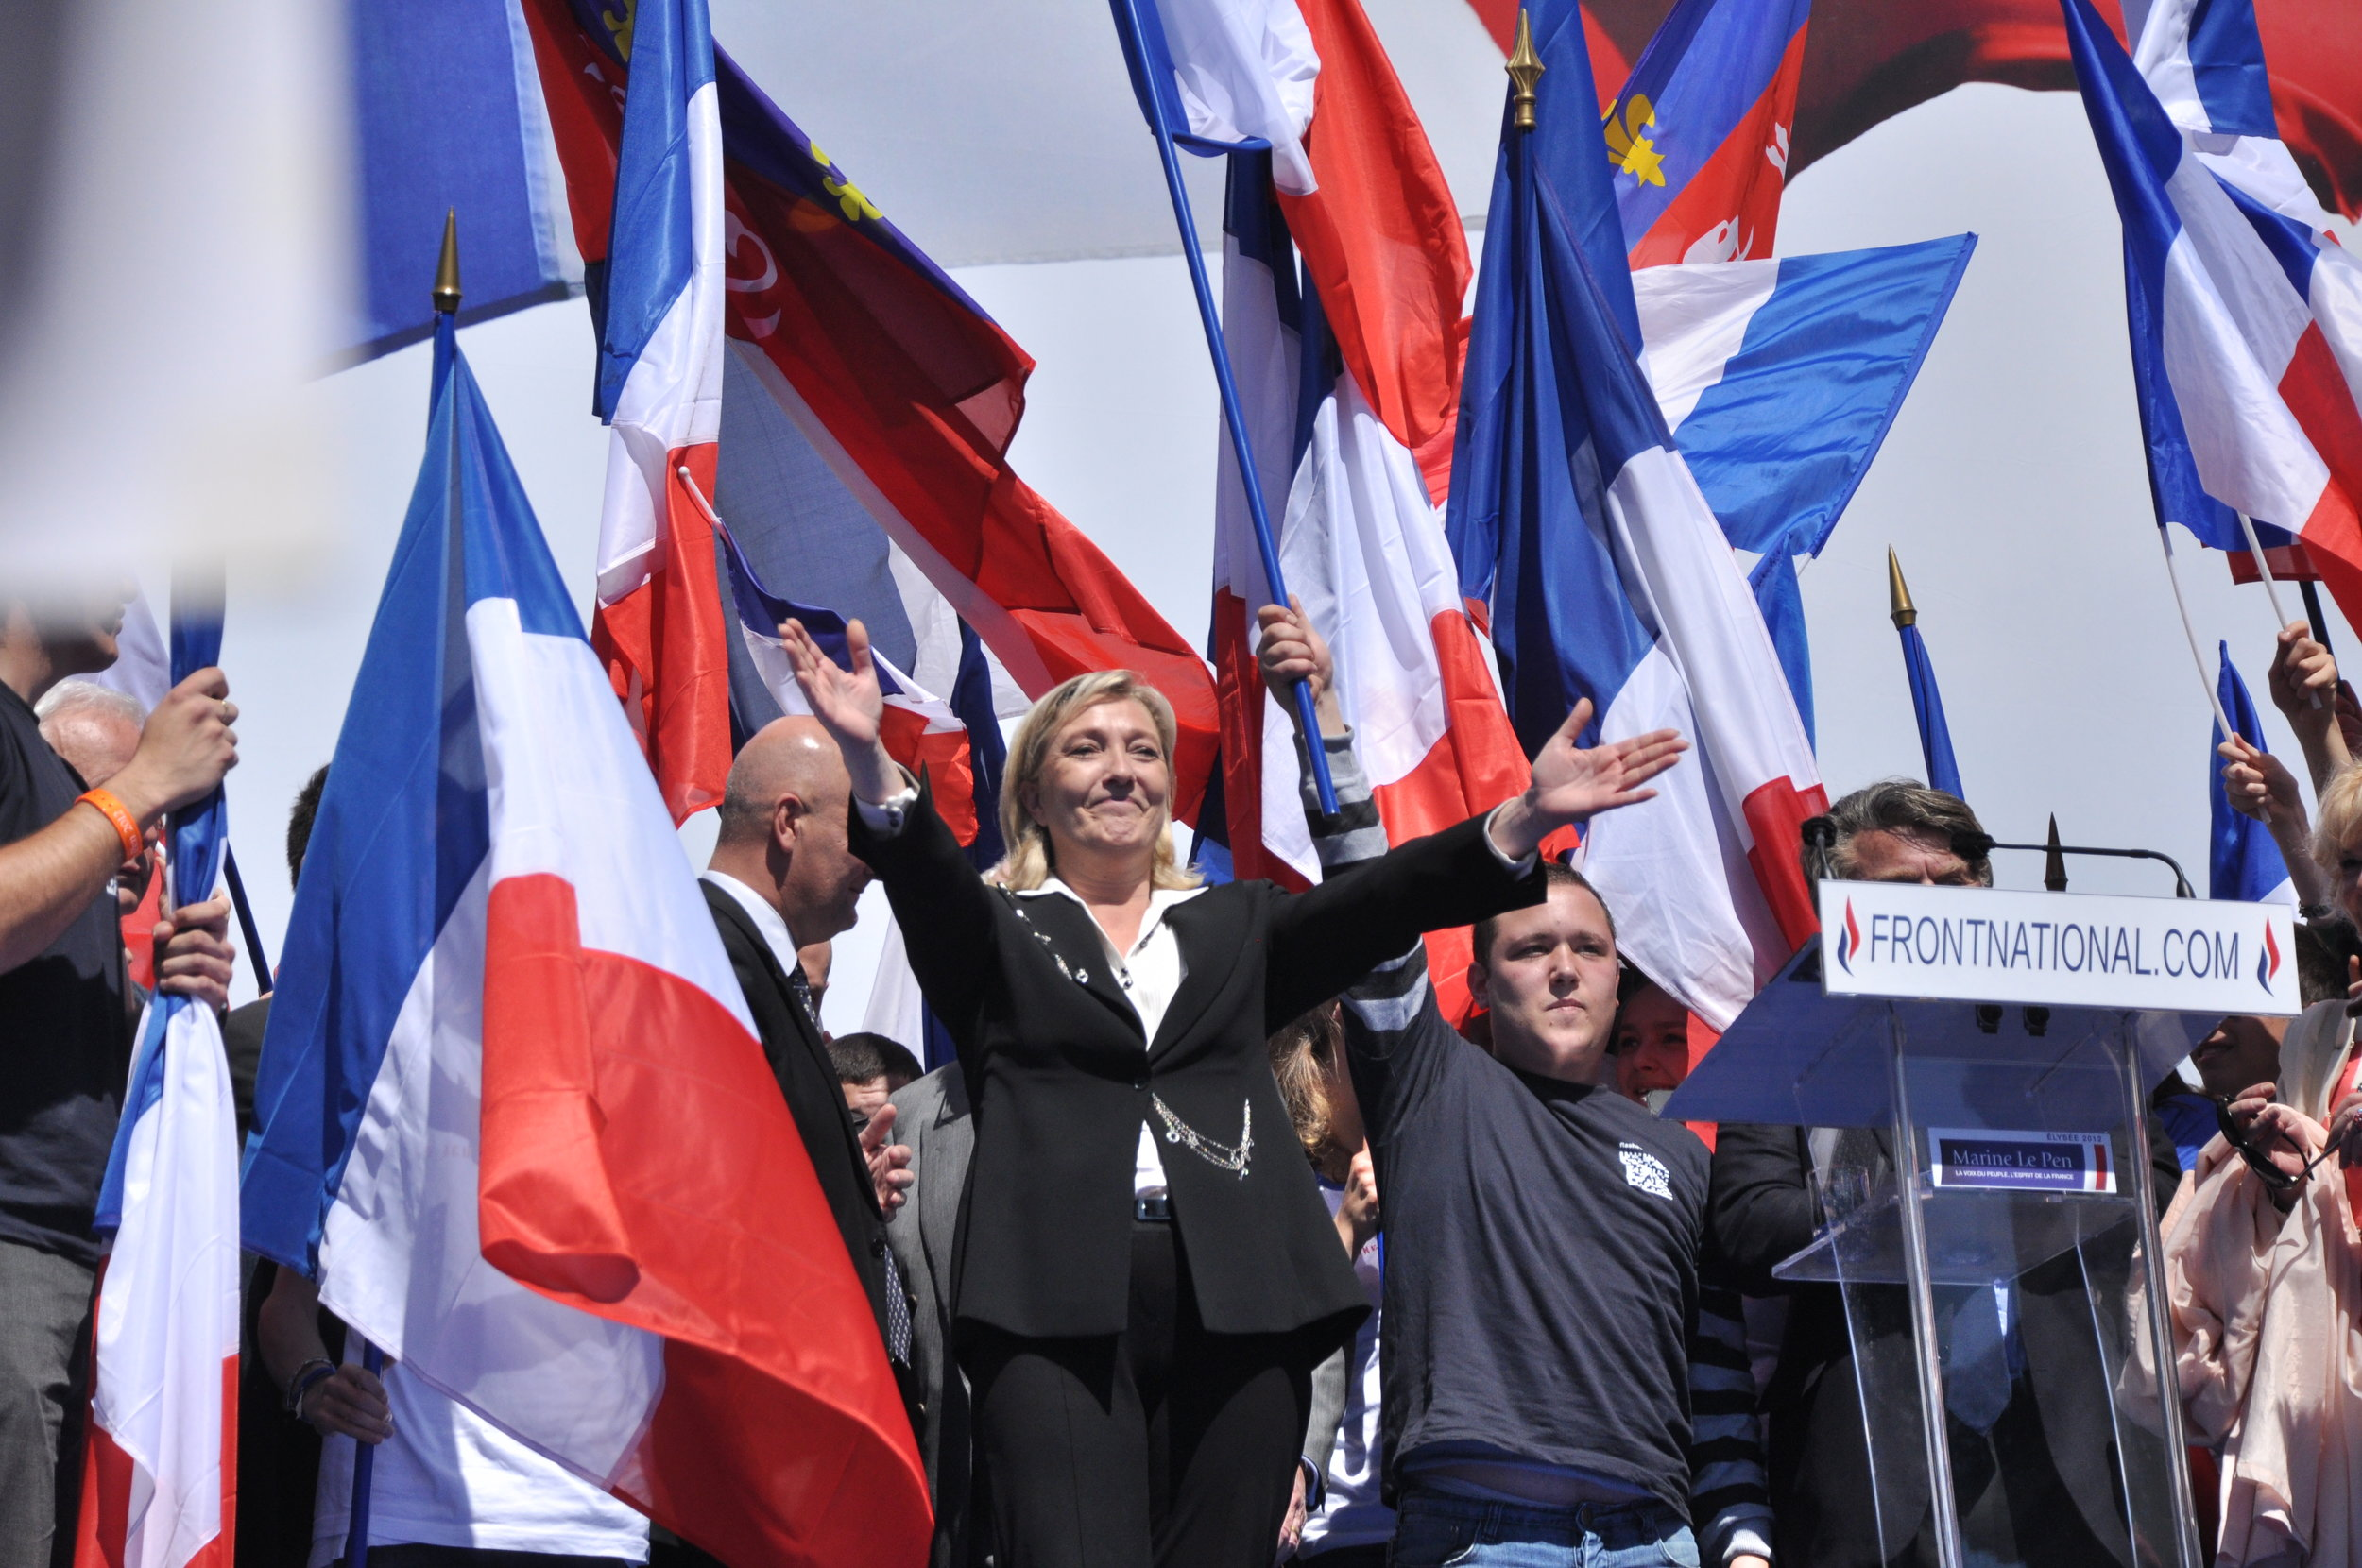 Marine Le Pen, the representative of France's xenophobic Front National party, could be the next French president